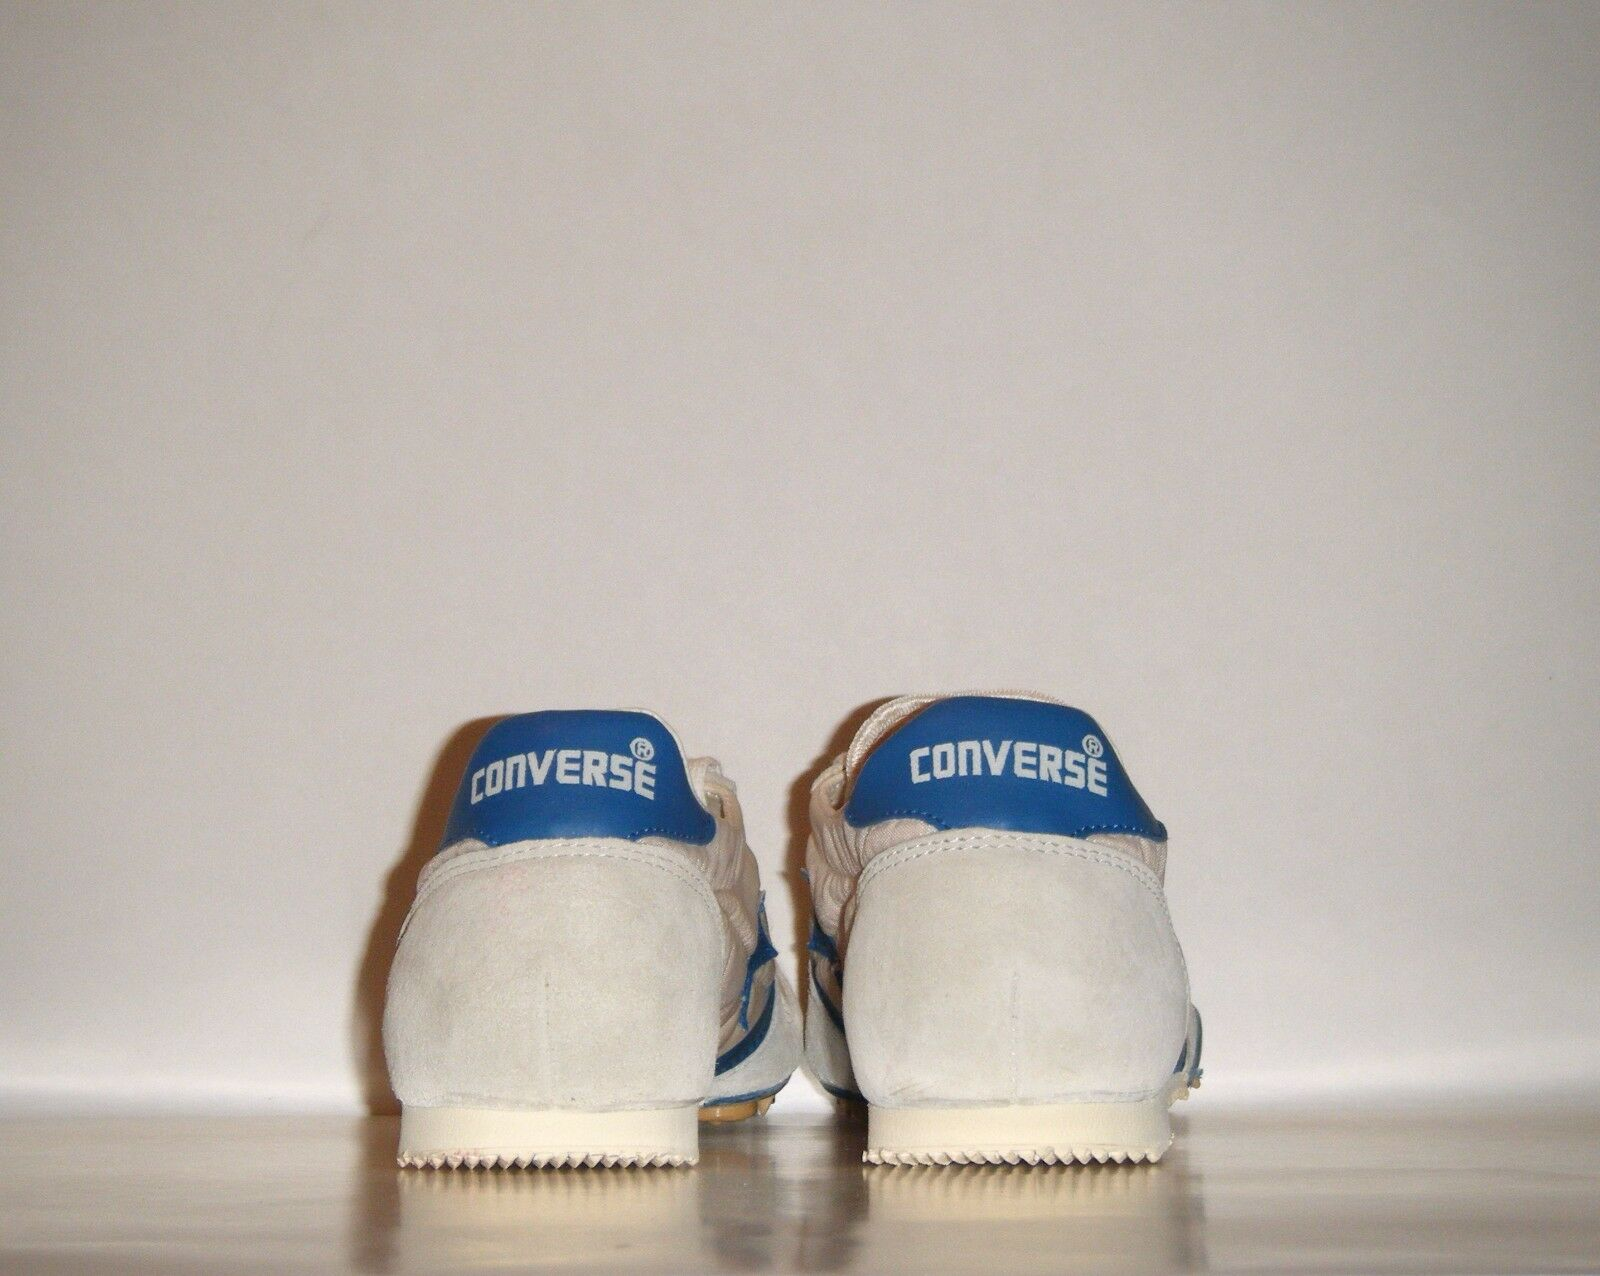 Vtg NOS Star 1980s Converse One Star NOS Track Spikes Sz. 6 All Running Chuck Taylor dc930d